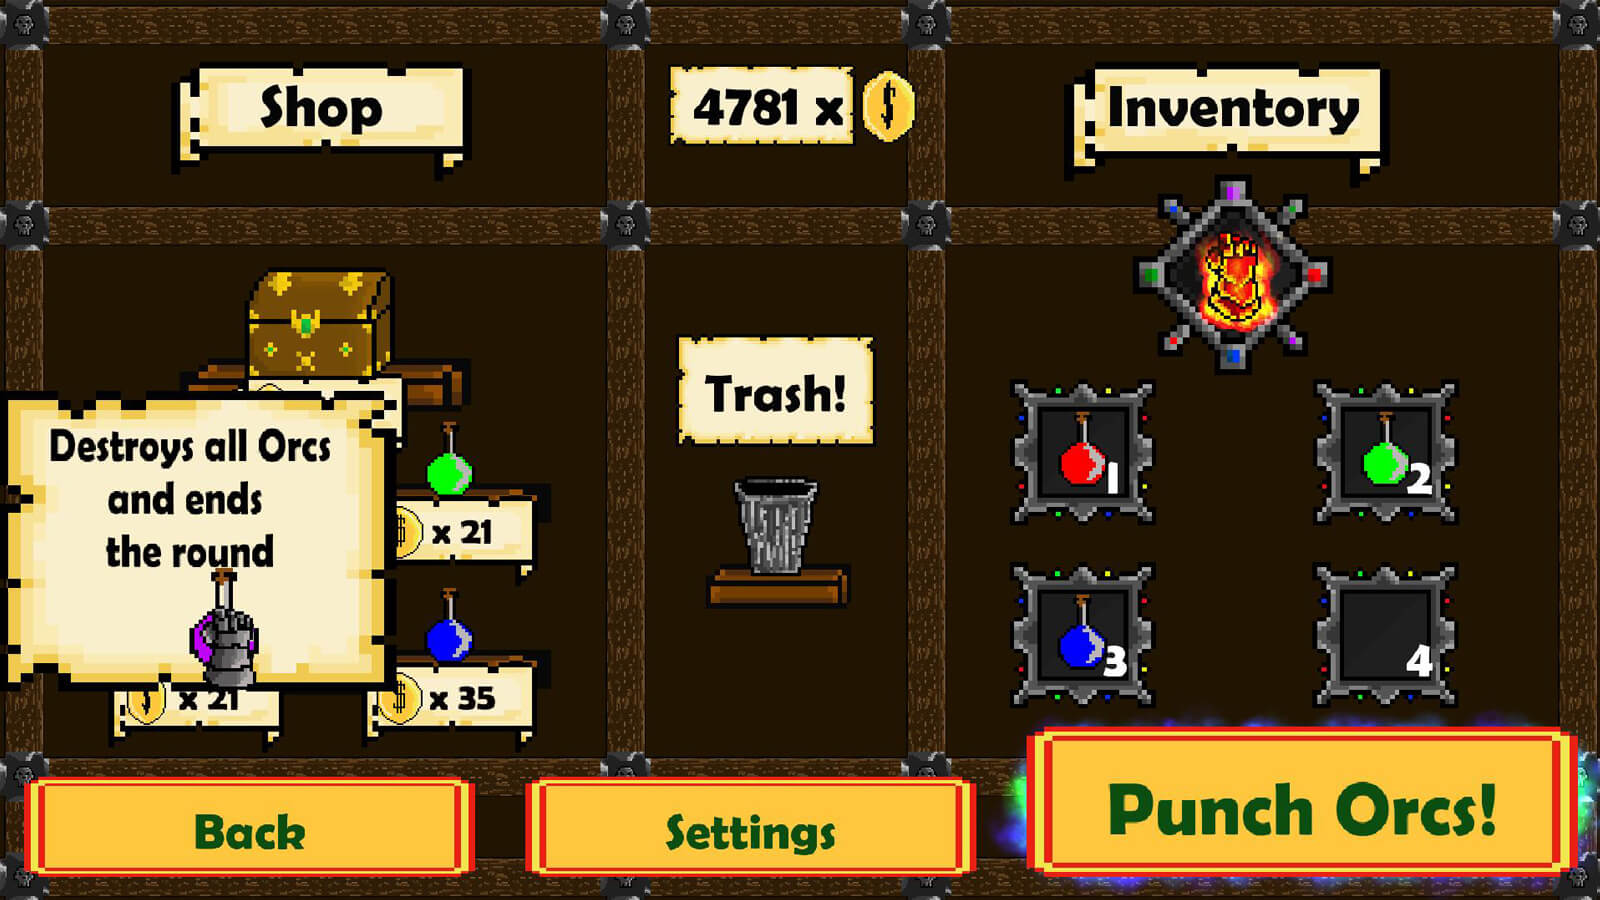 A shop menu where the player can purchase items.